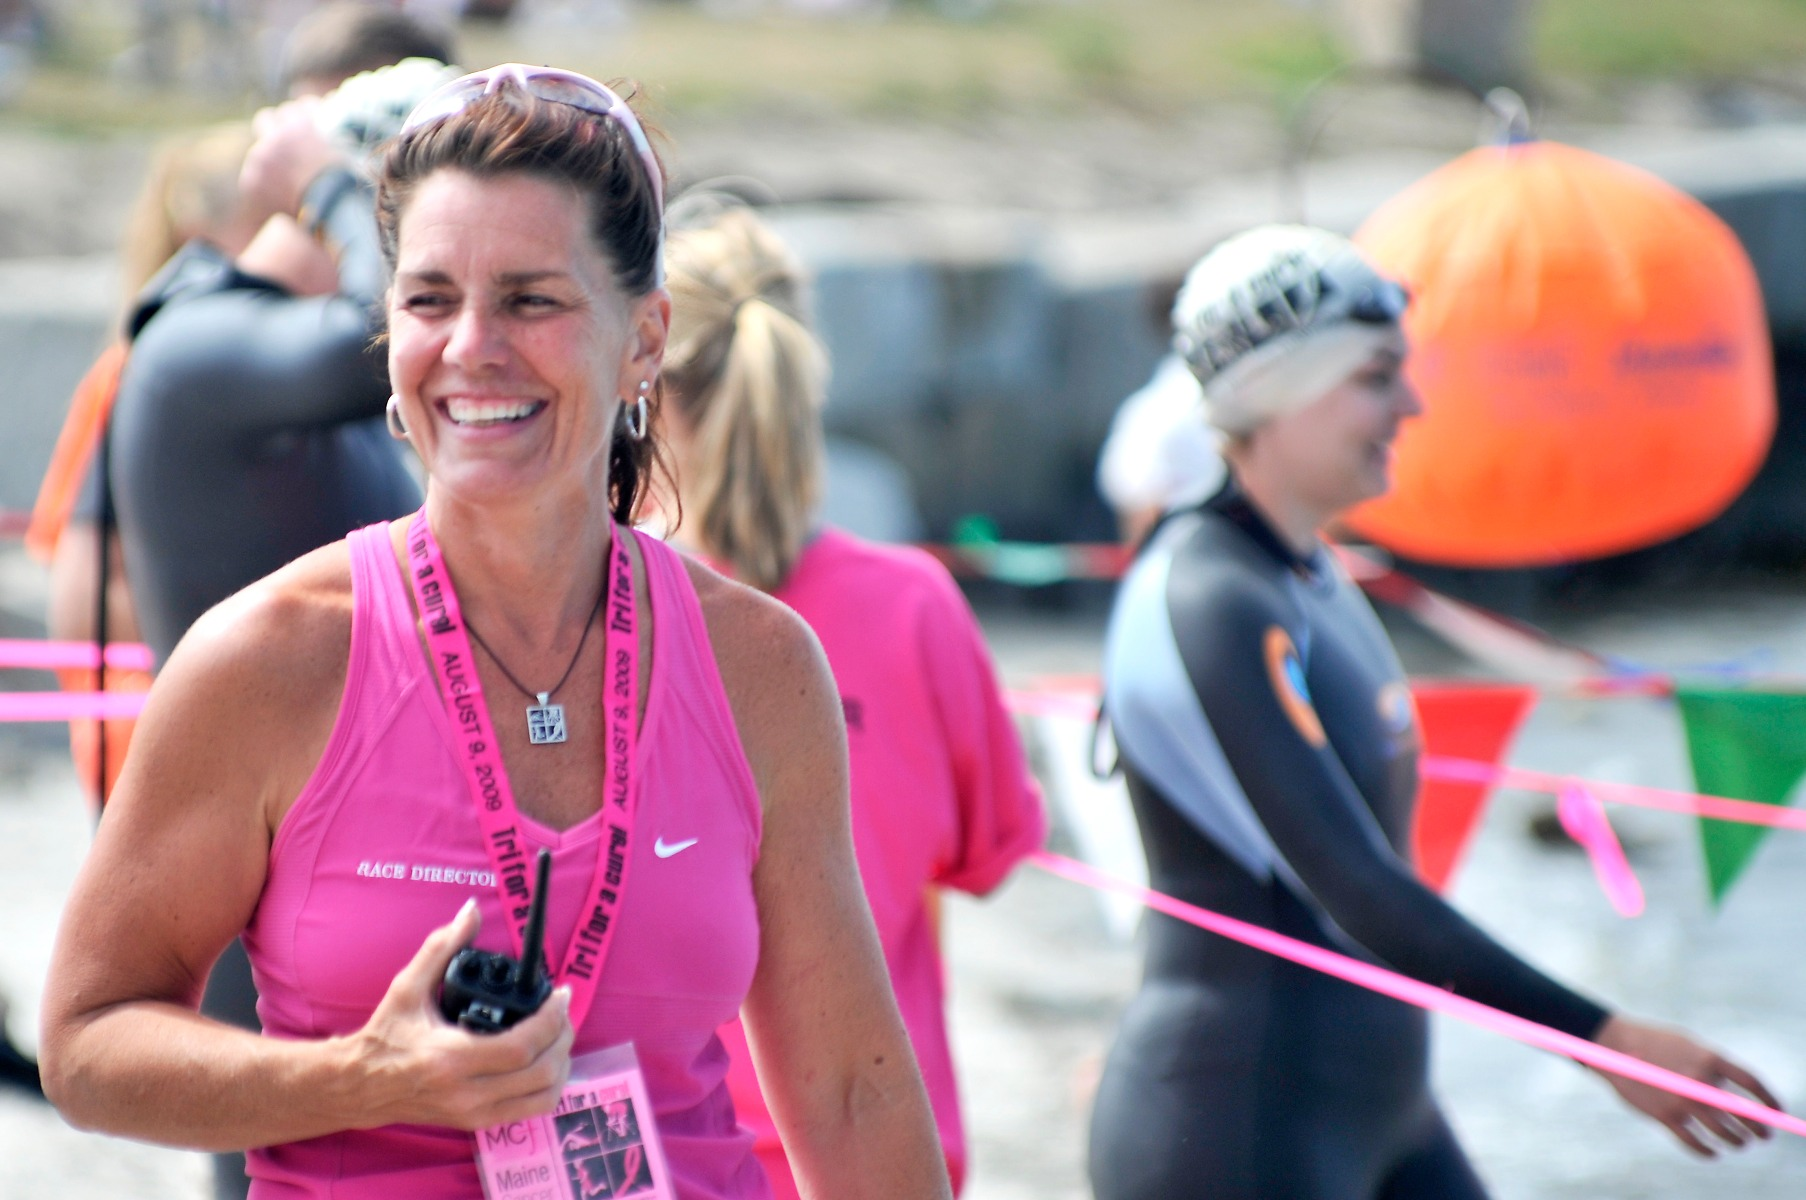 Julie Marchese at Tri for a Cure